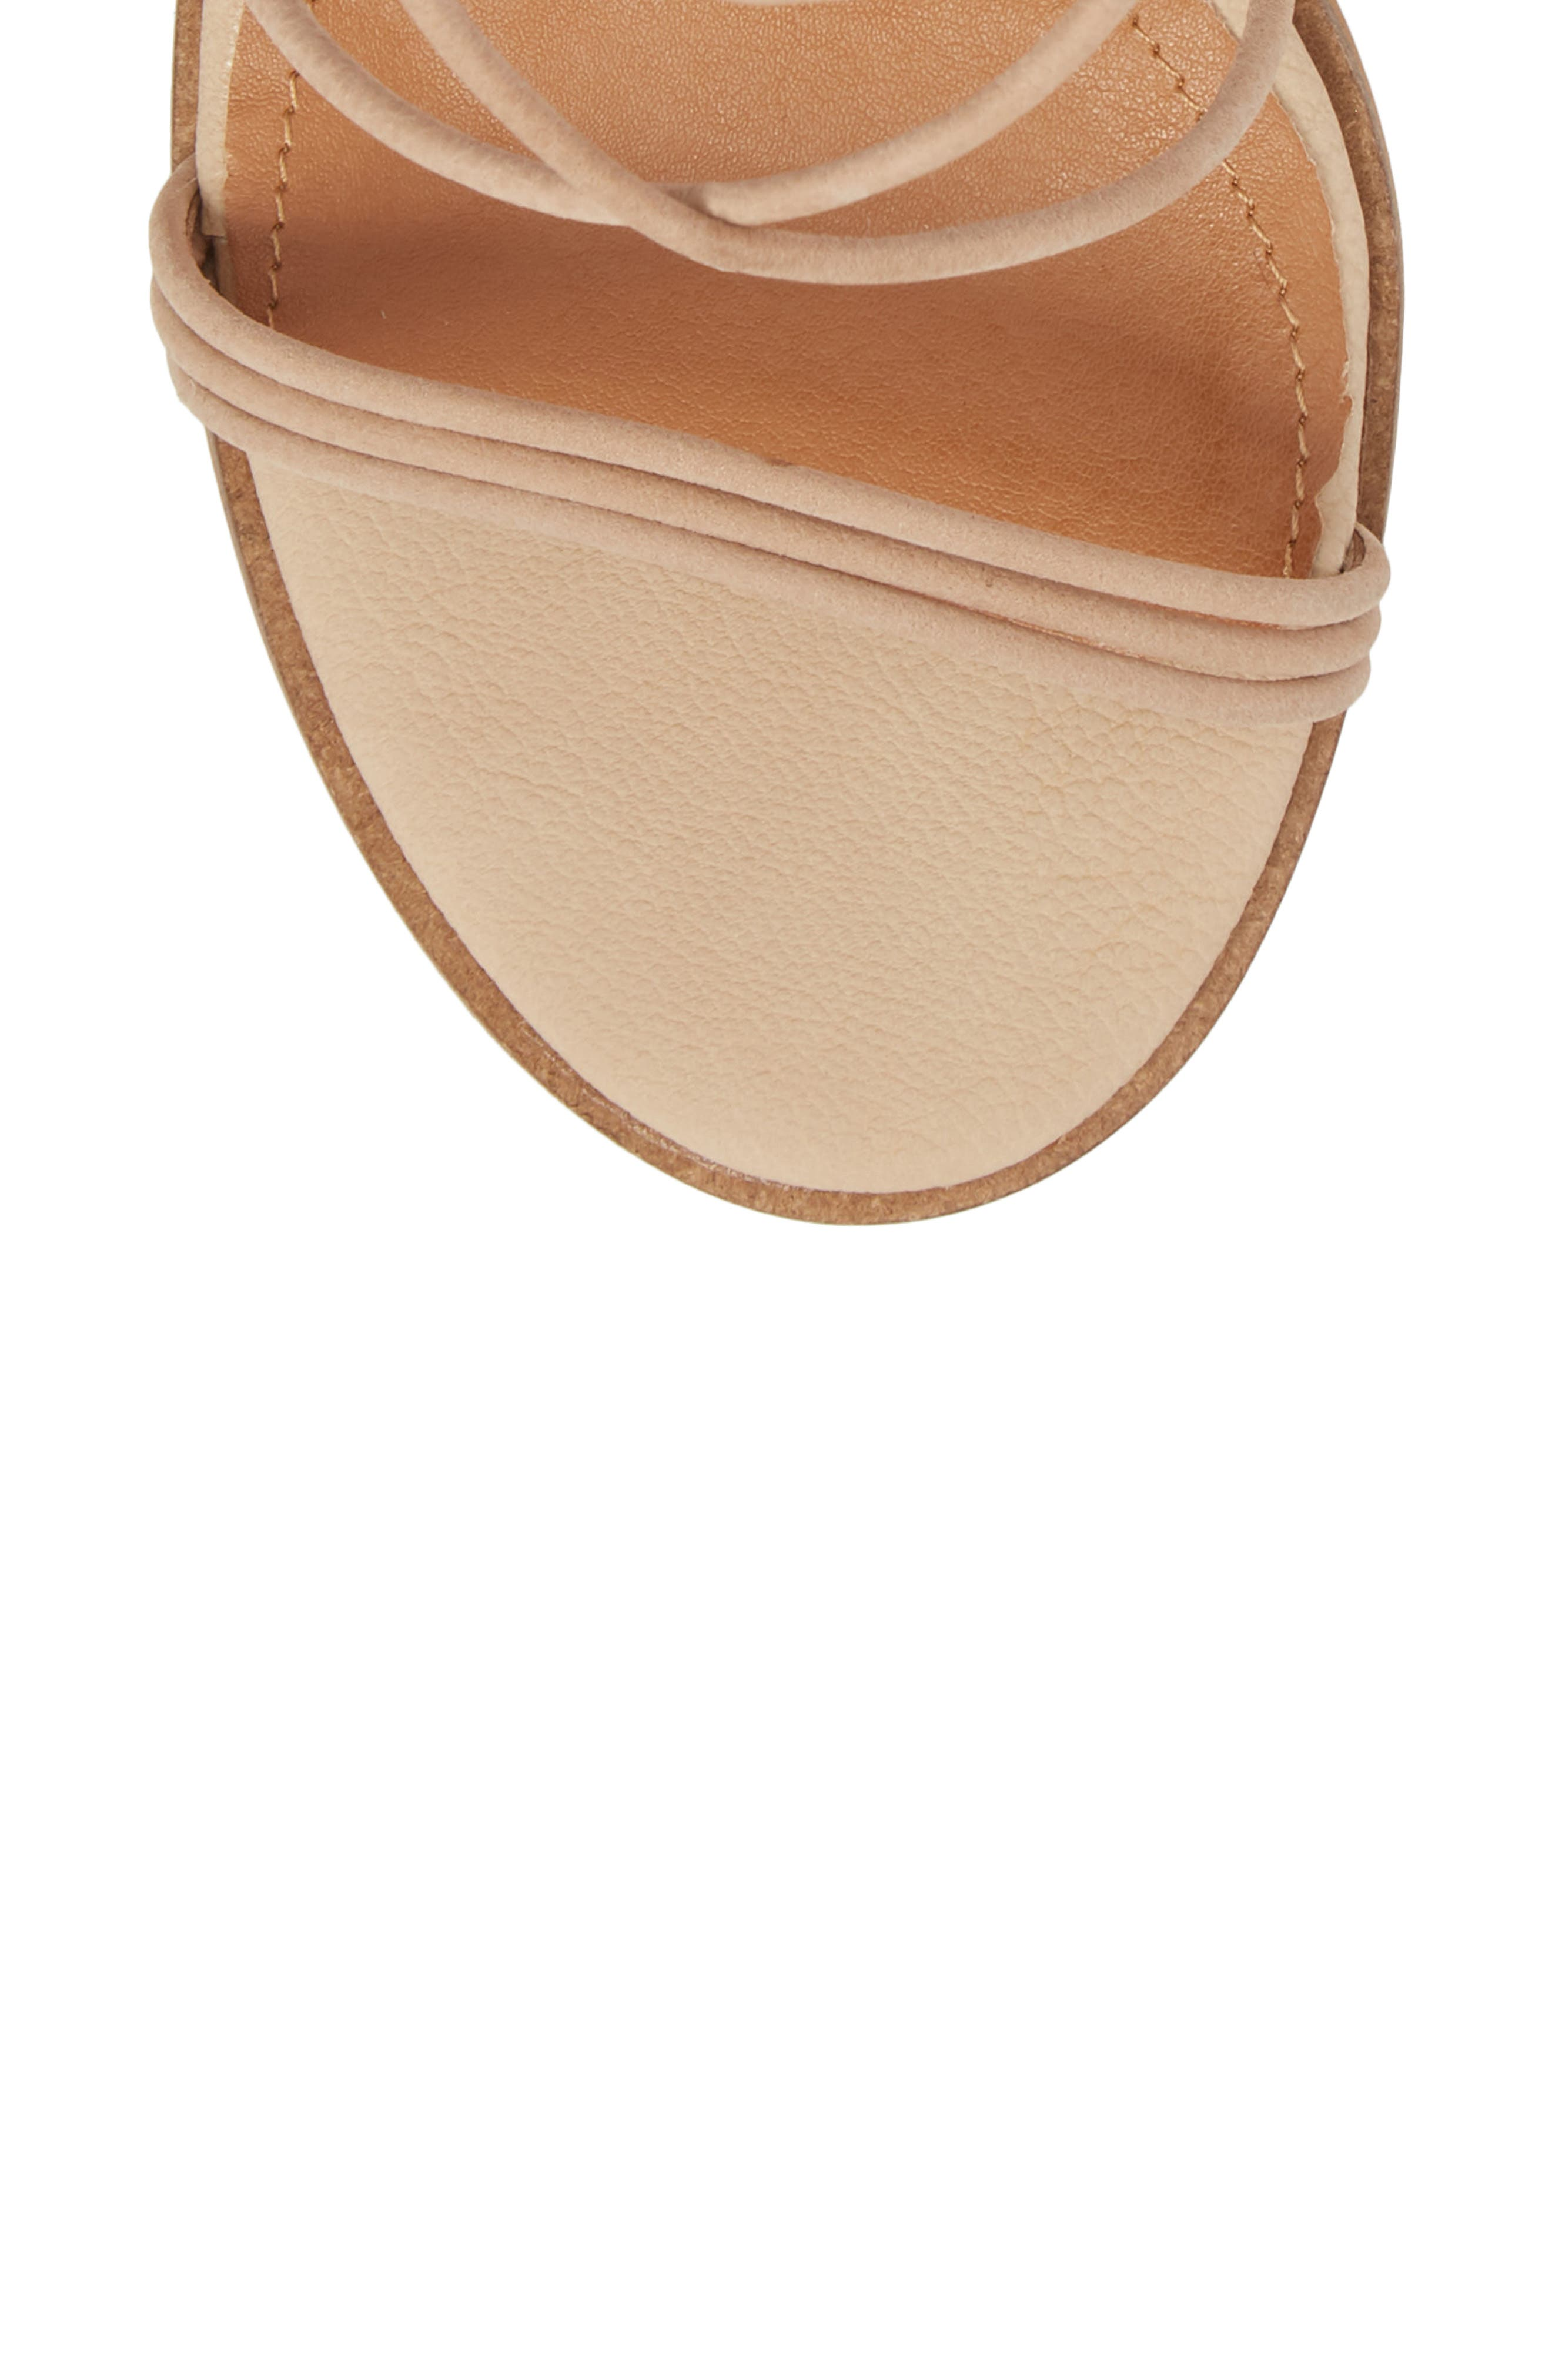 Aflux Tall Strappy Sandal,                             Alternate thumbnail 5, color,                             NATURAL LEATHER